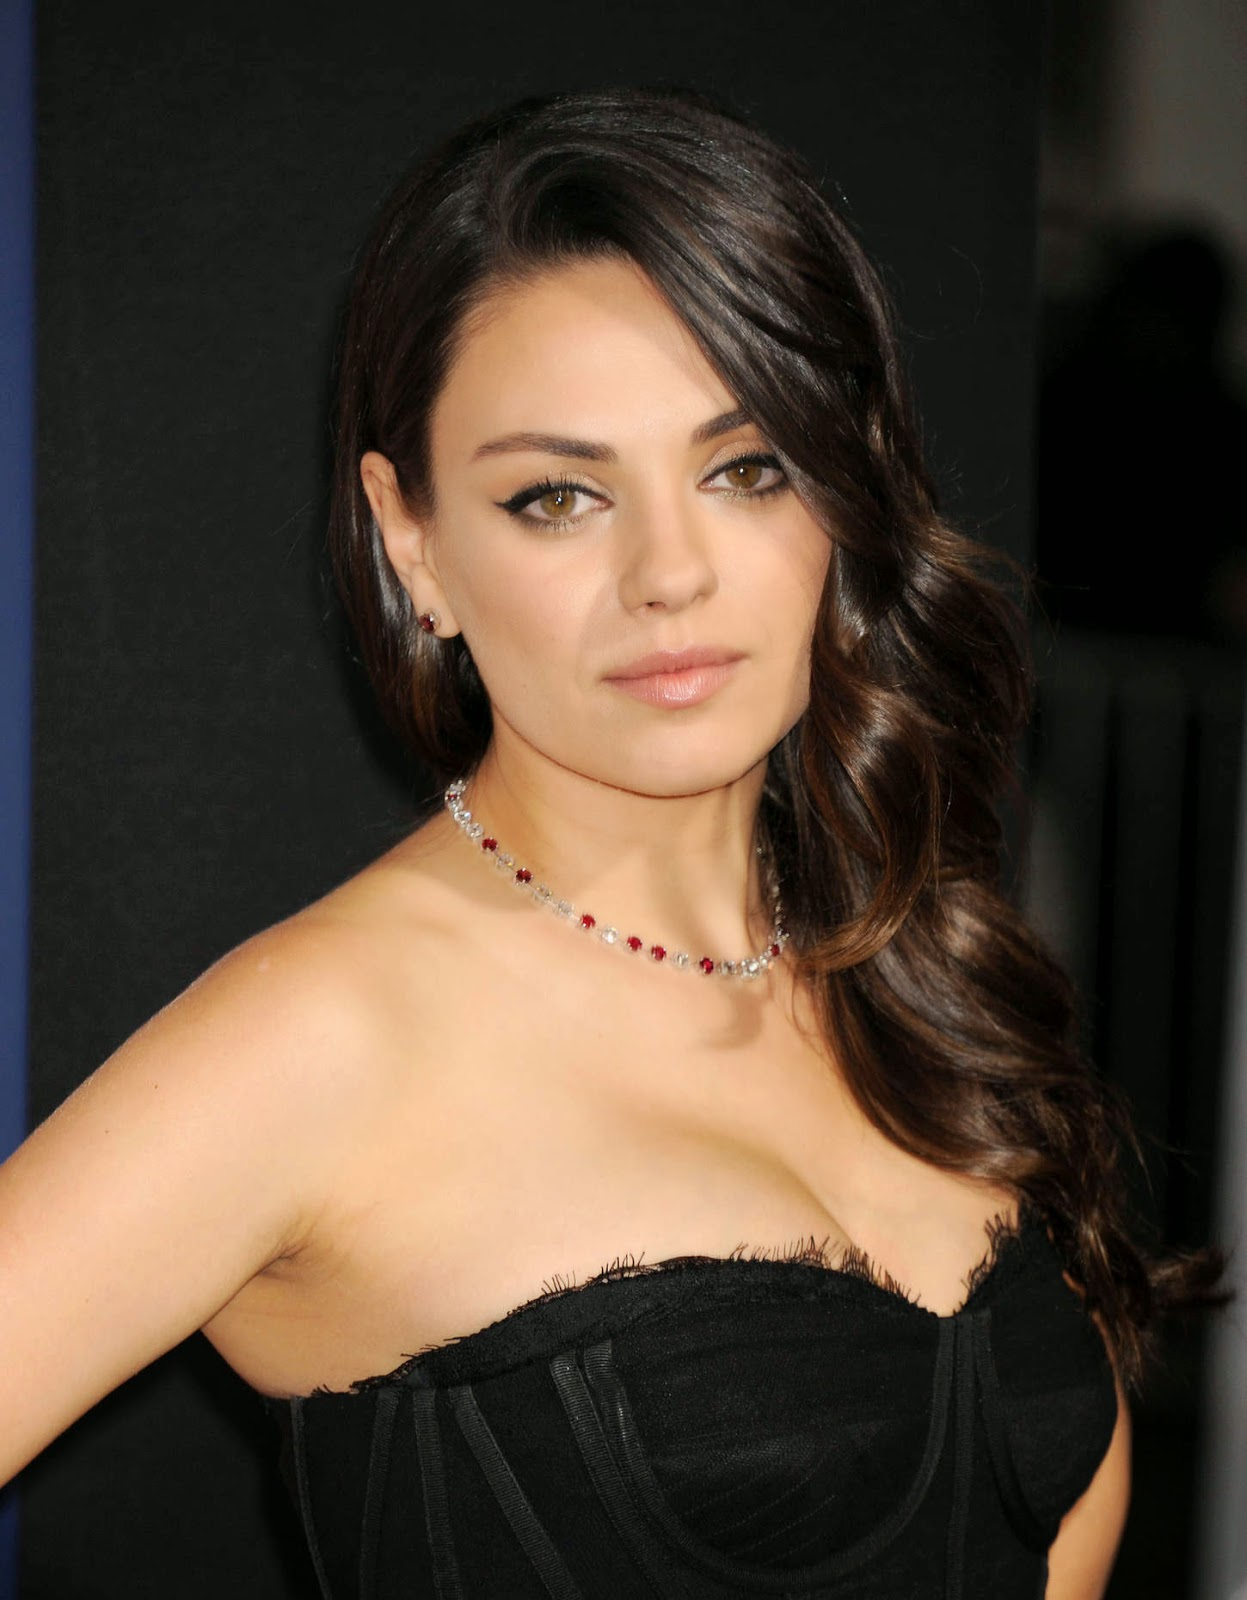 Mila Kunis flaunts a Dolce & Gabbana corset dress at the ... Mila Kunis